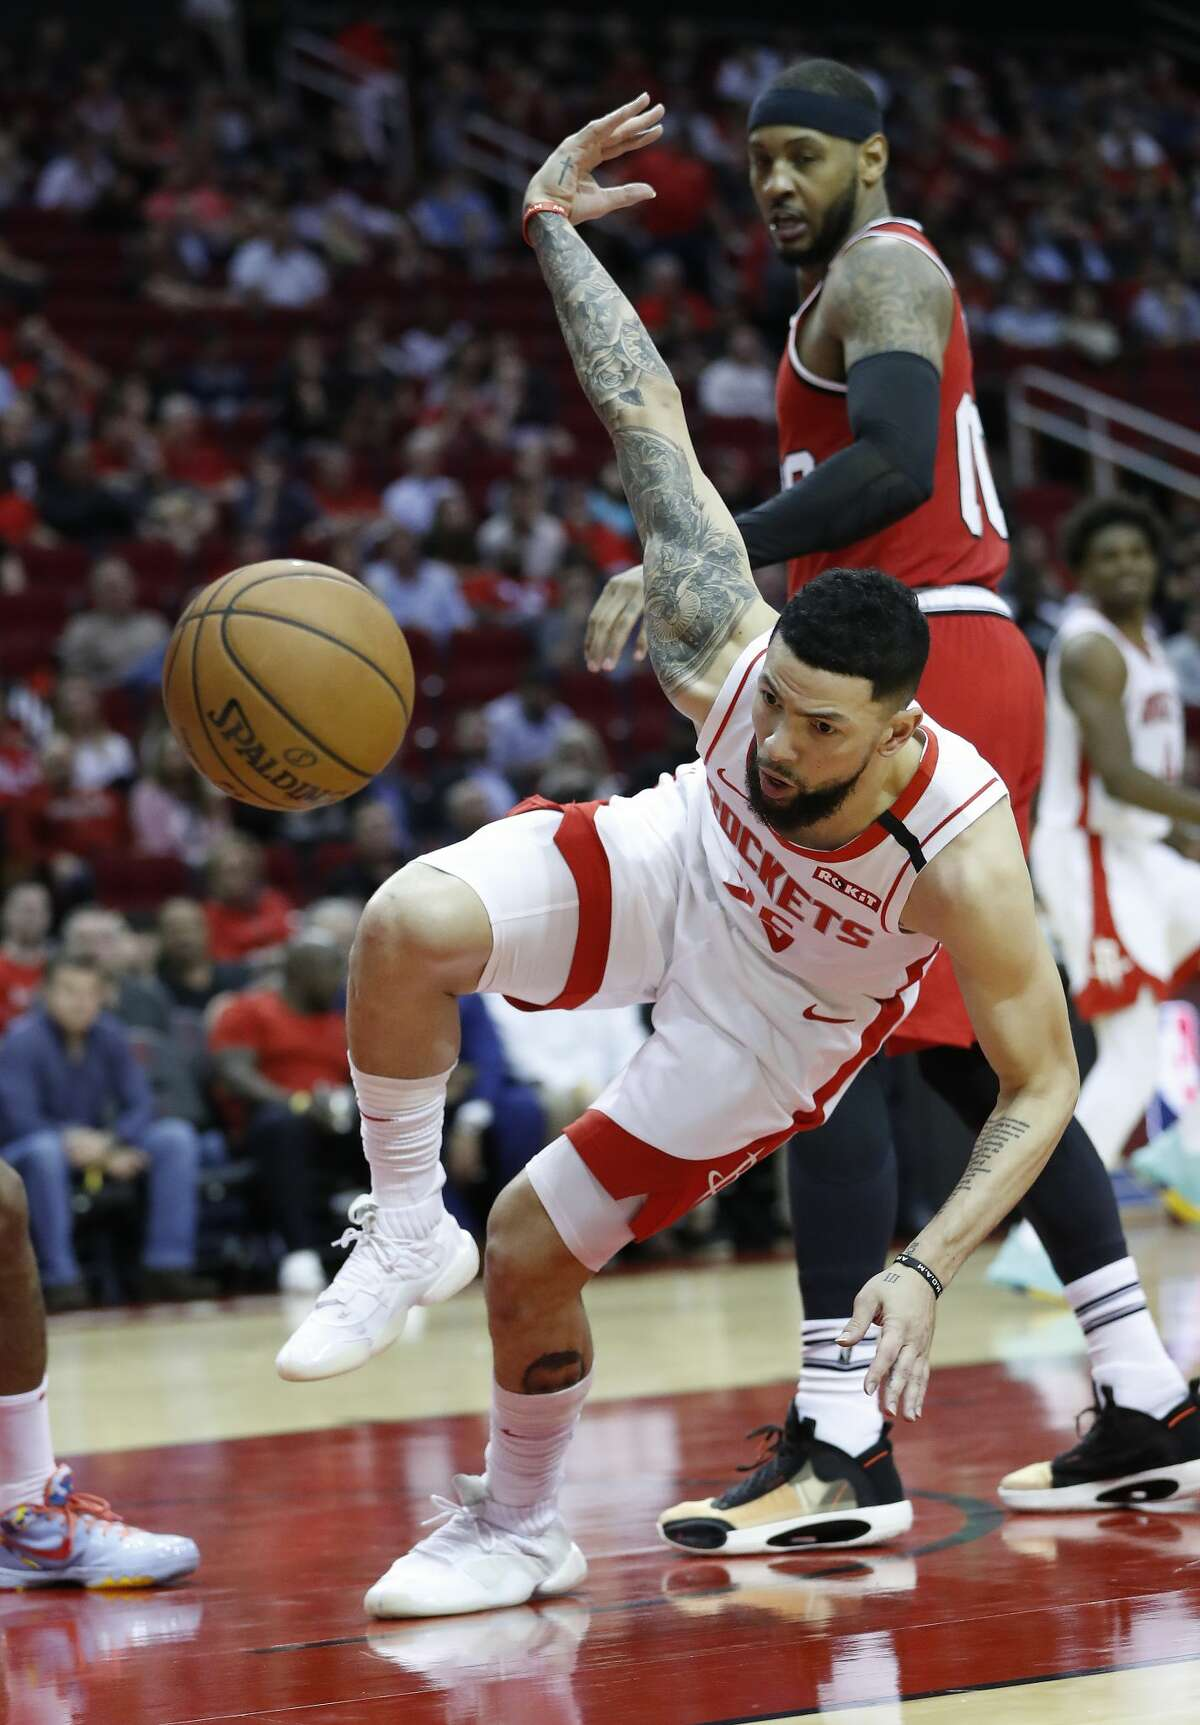 Houston Rockets guard Austin Rivers (25) falls after going up for a basket against Portland Trail Blazers forward Carmelo Anthony (00) in the second half of an NBA basketball game at Toyota Center, in Houston, Wednesday, Jan. 15, 2020.